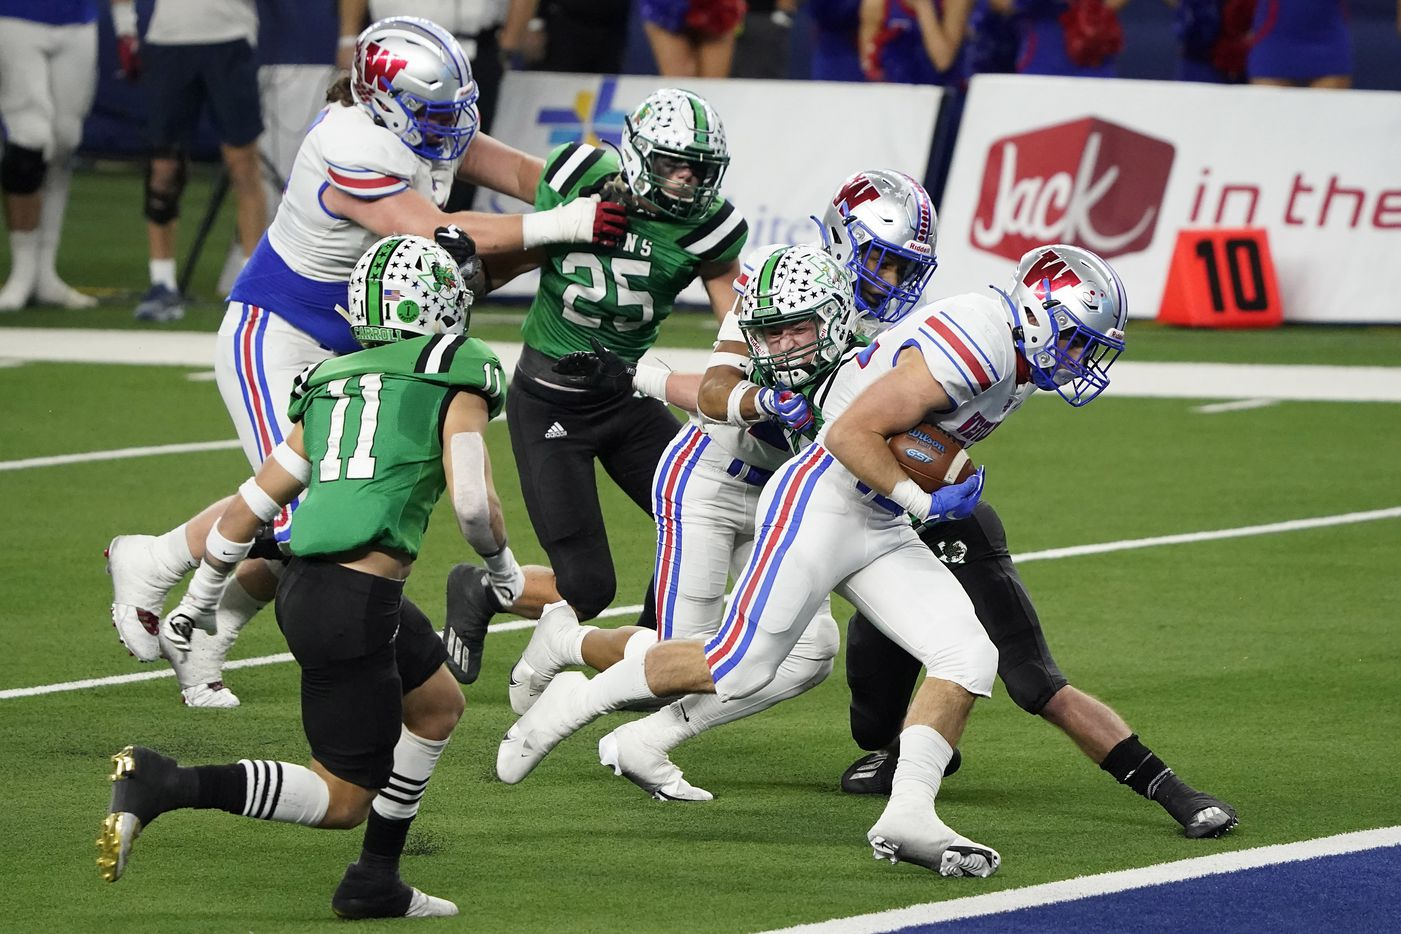 Austin Westlake running back Grey Nakfoor (22) scores on a touchdown run past Southlake Carroll defensive back Josh Spaeth (11) during the fourth quarter of the Class 6A Division I state football championship game at AT&T Stadium on Saturday, Jan. 16, 2021, in Arlington, Texas. Westlake won the game 52-34.